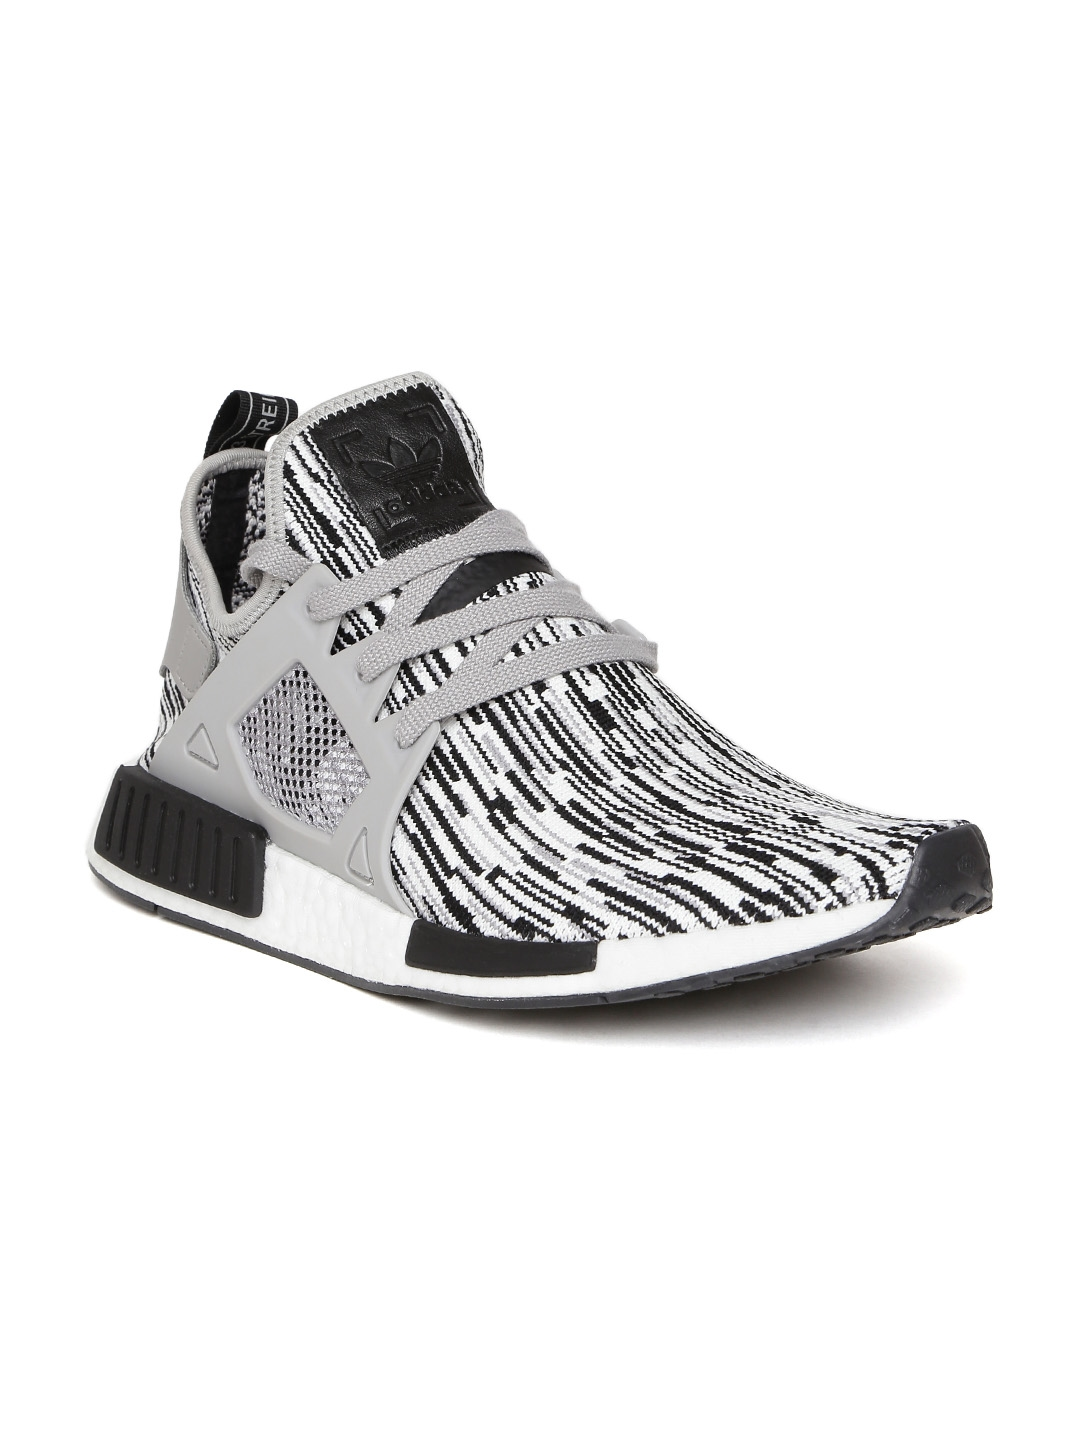 acd1dd5fd Buy ADIDAS Originals Men White   Black NMD XR1 PK Sneakers - Casual ...